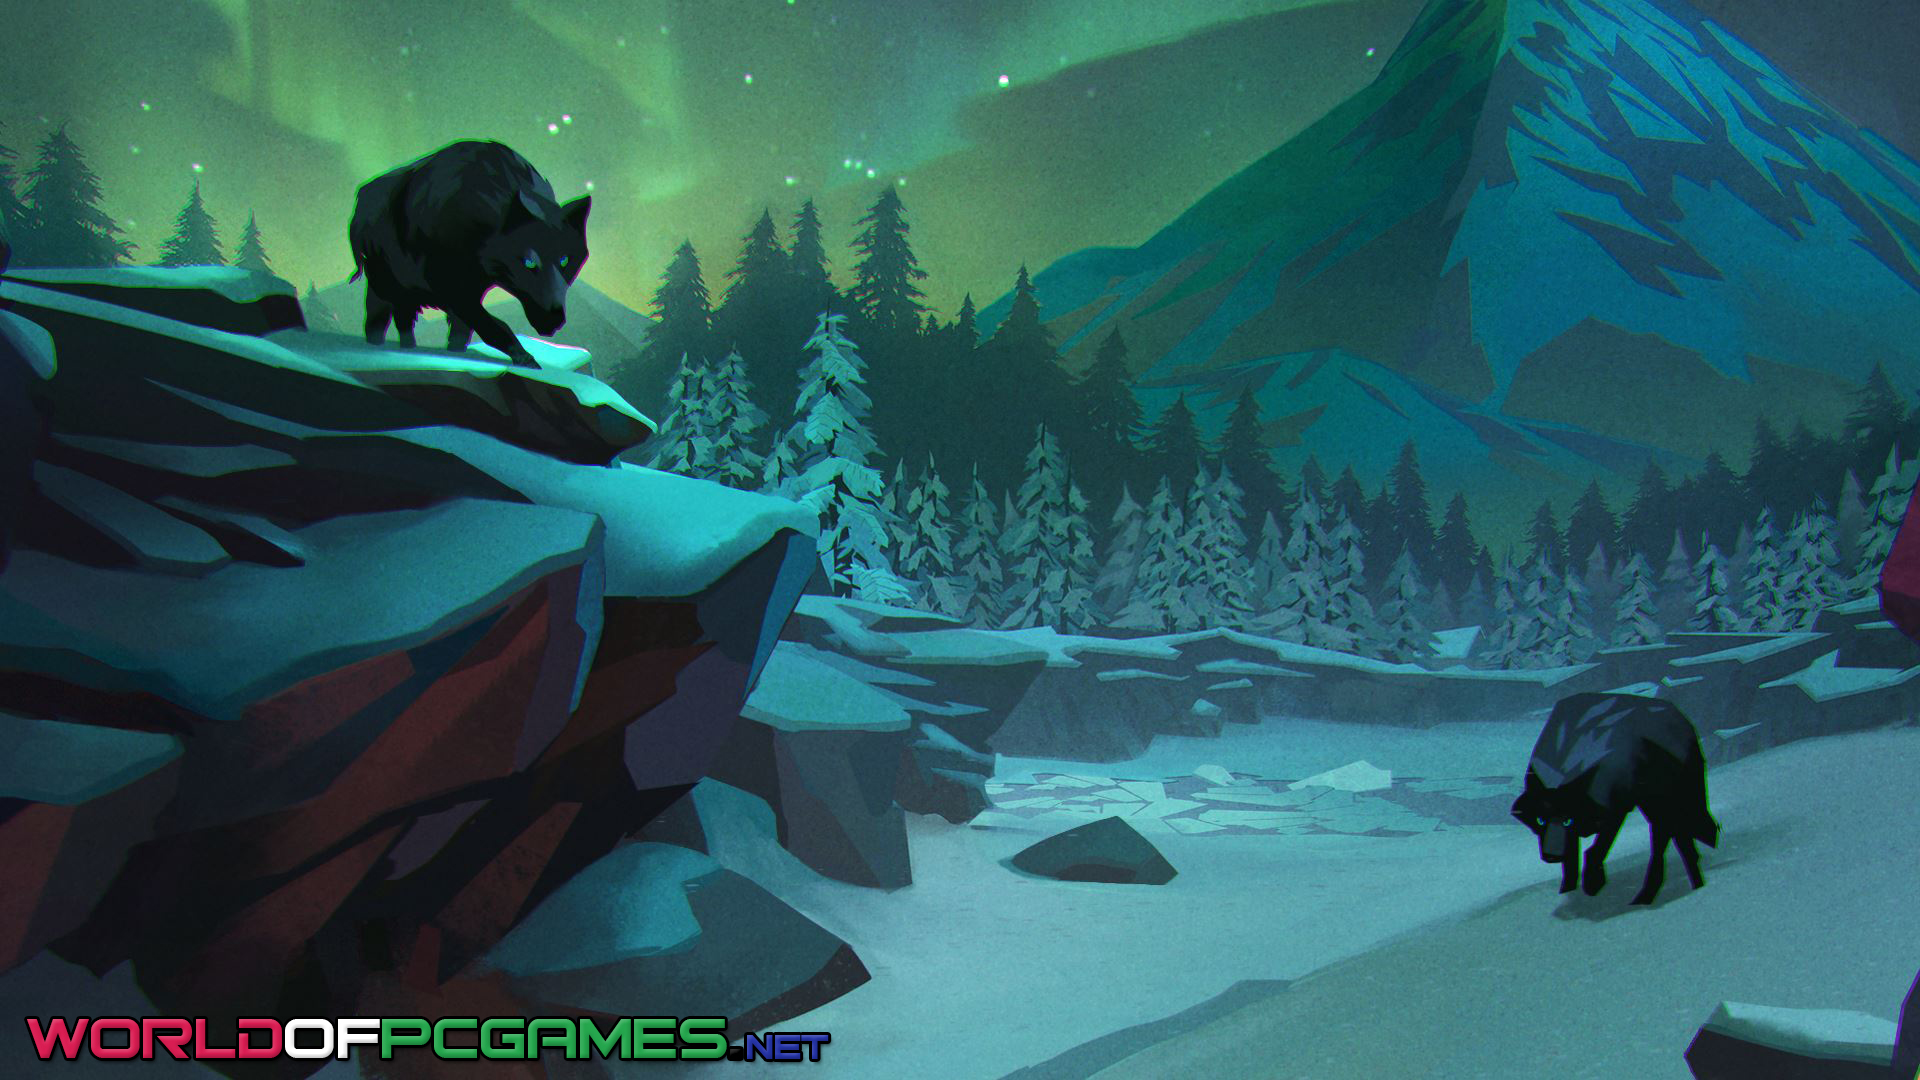 The Long Dark Free Download PC Game By Worldofpcgames.com